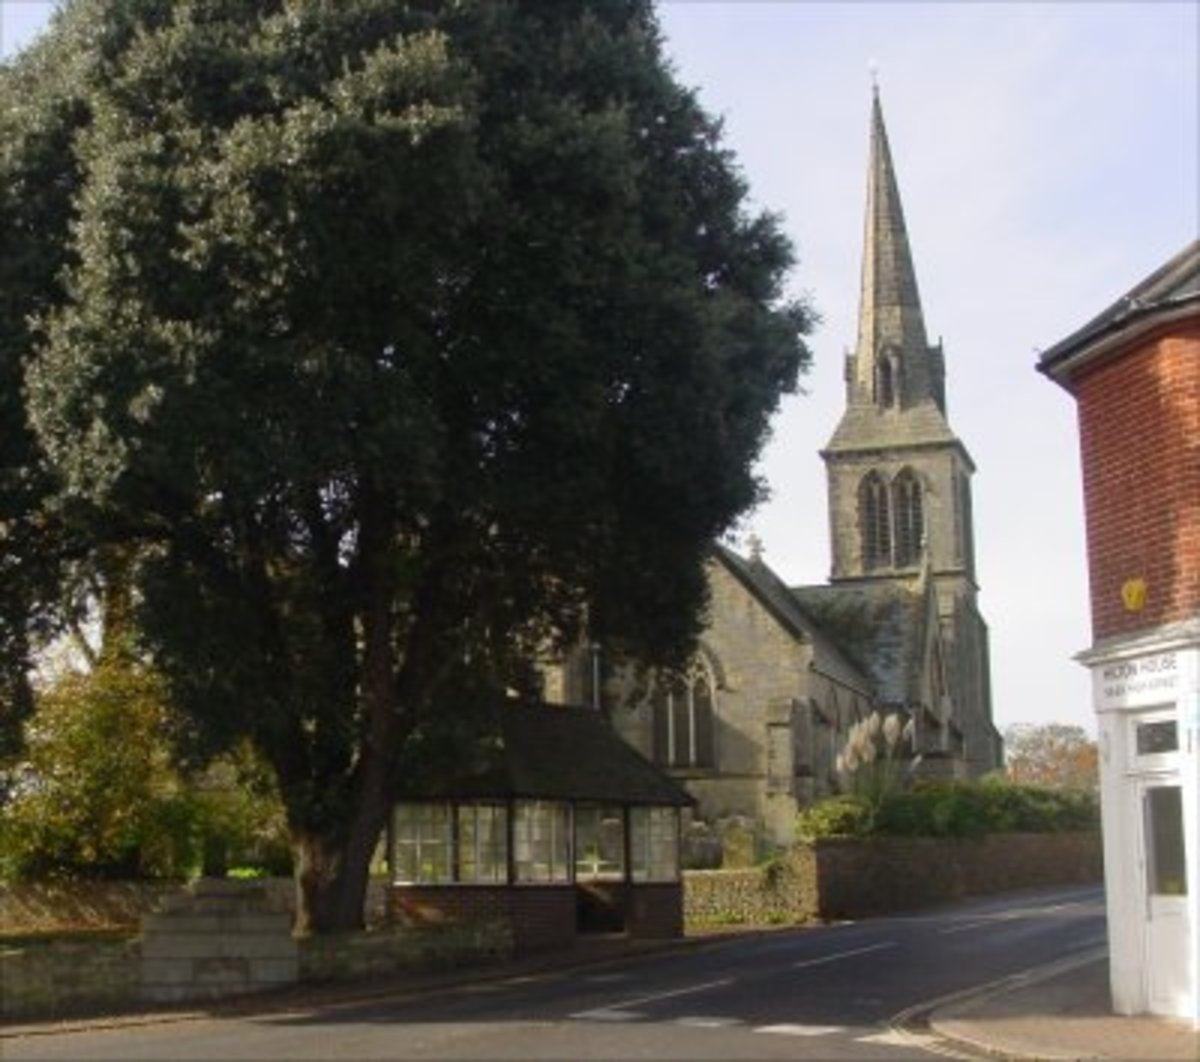 Church of St Lawrence, at the central crossroads of Hurstpierpoint